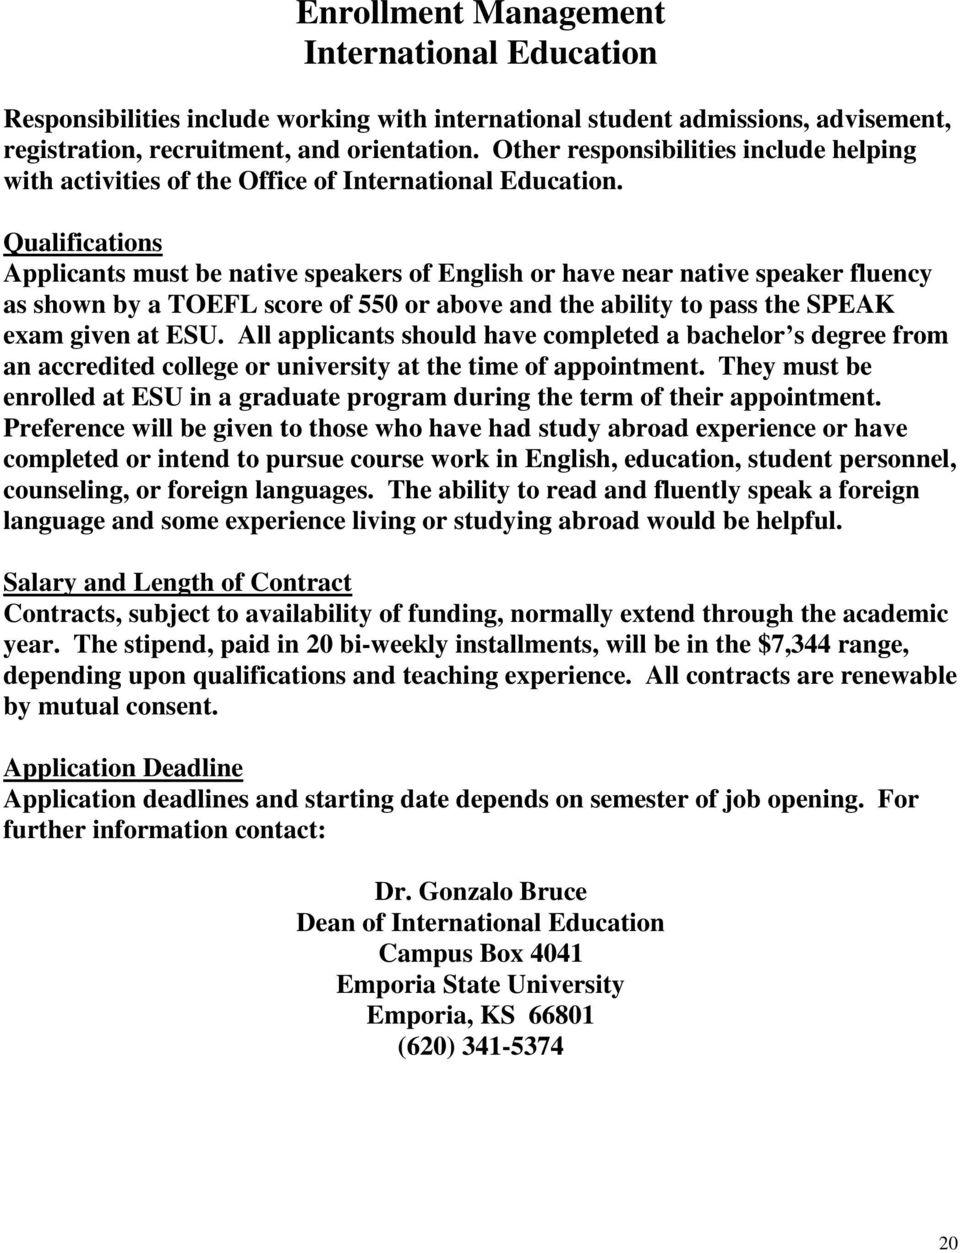 Applicants must be native speakers of English or have near native speaker fluency as shown by a TOEFL score of 550 or above and the ability to pass the SPEAK exam given at ESU.